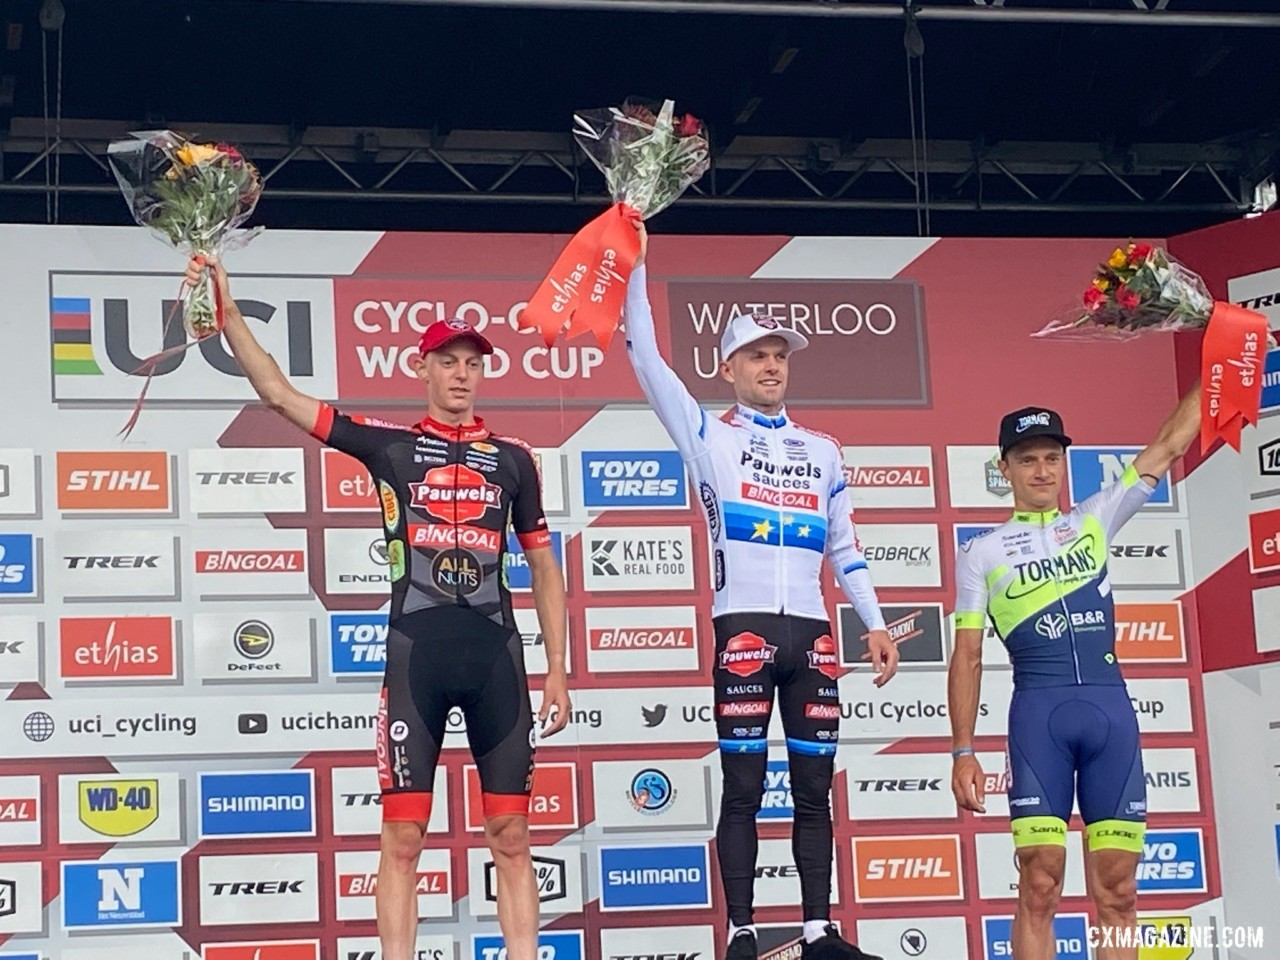 2021 UCI Cyclocross World Cup Waterloo Elite Men's Podium and results